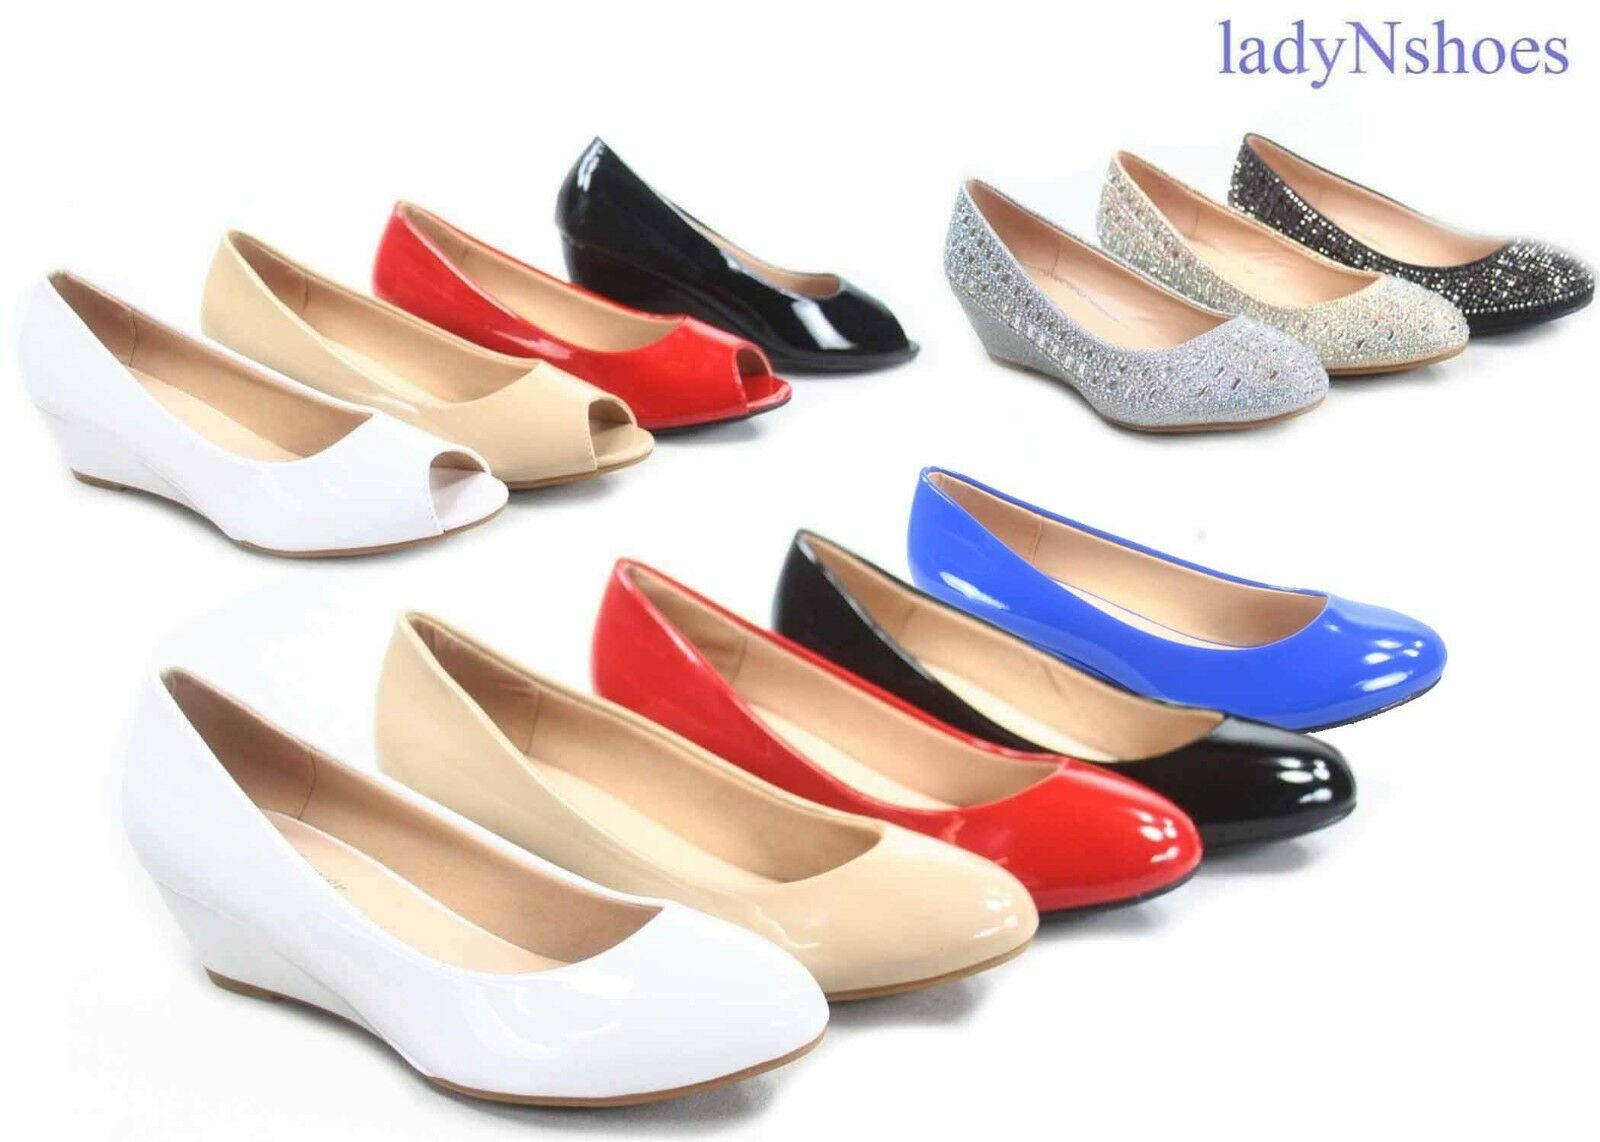 NEW  Women's Round Toe Open Toe Pump Patent Glitter Low Wedge Pump Toe Shoes Size 5 - 10 afae44